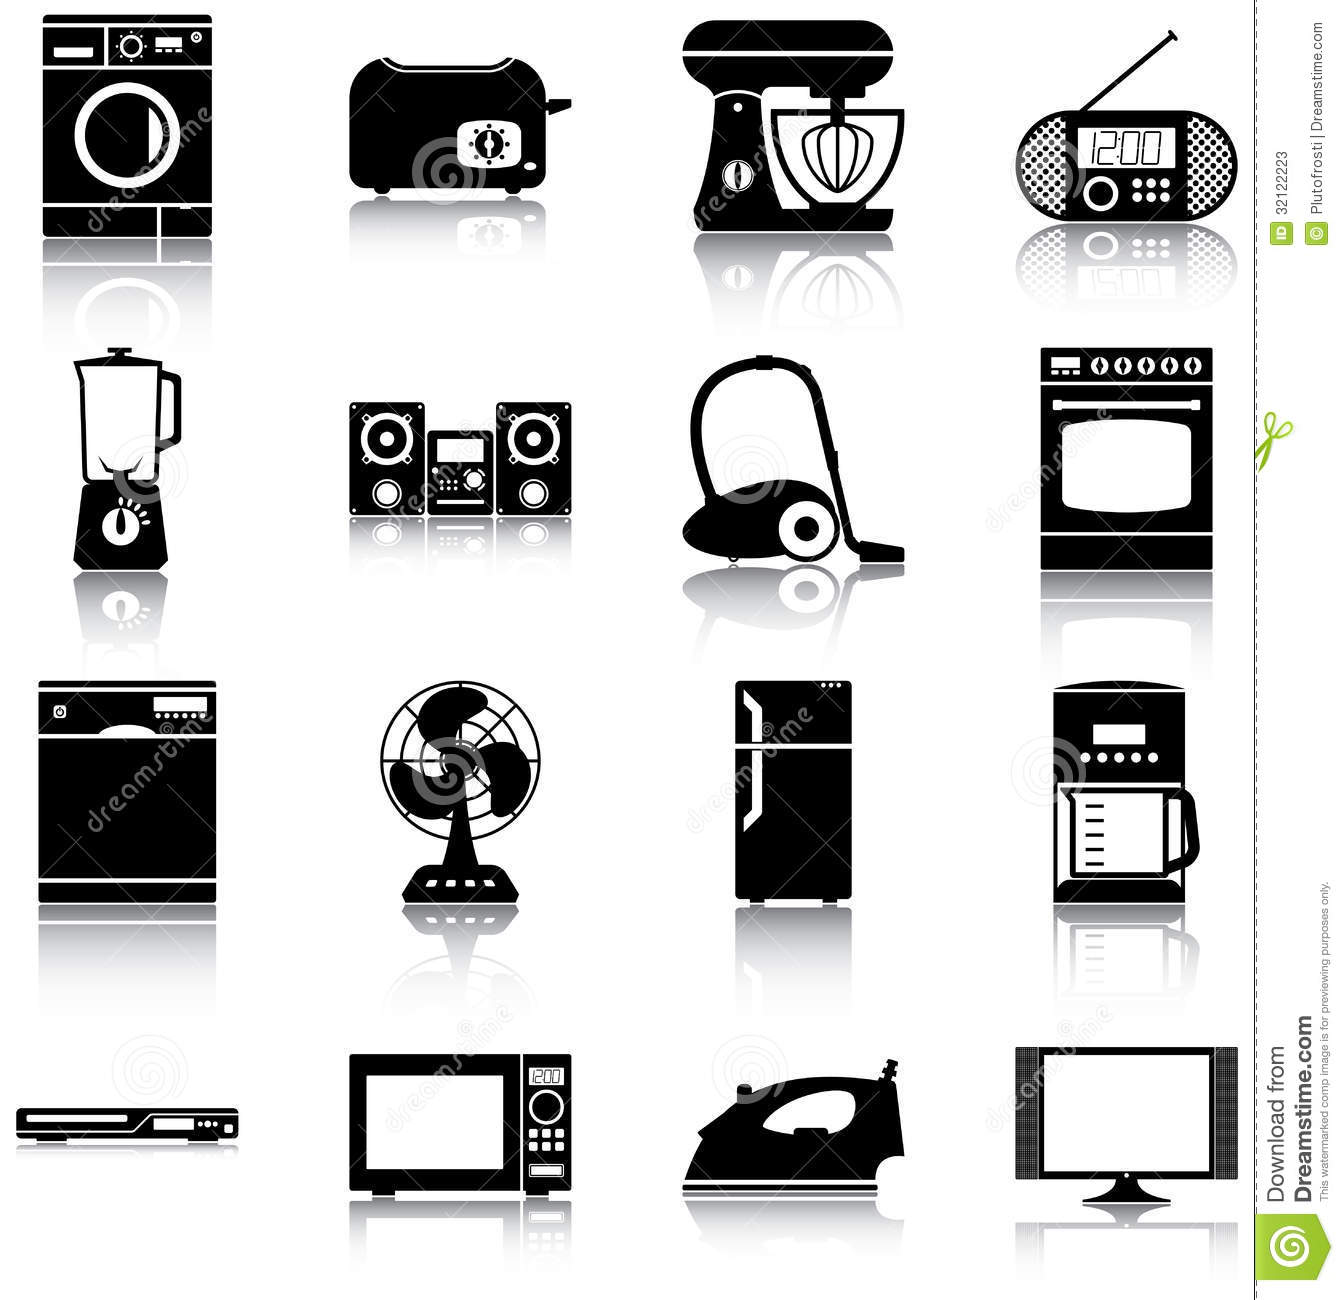 Home Appliances Stock Vector Image Of Illustration